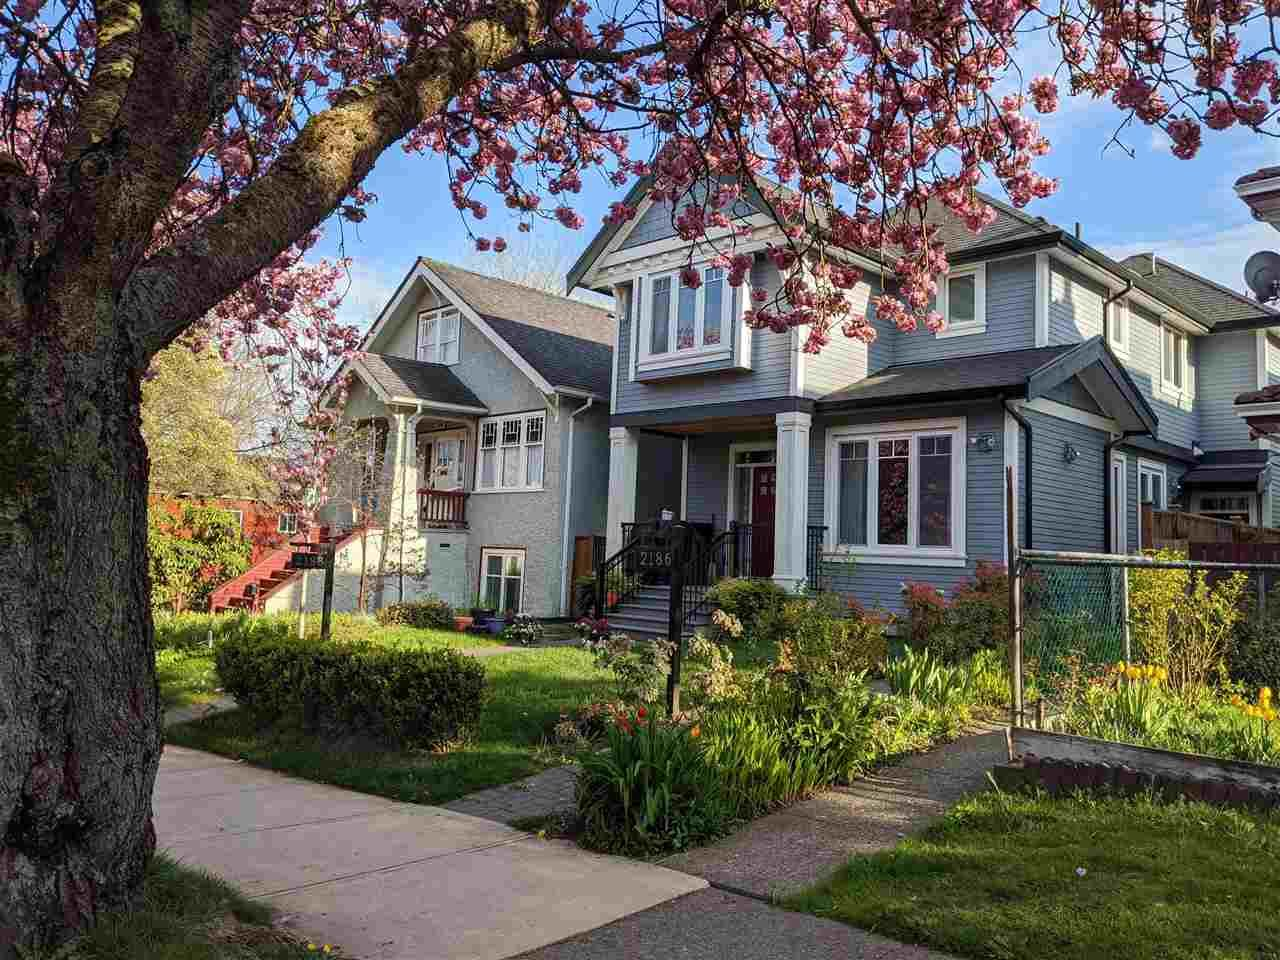 Main Photo: 2188 WILLIAM STREET in Vancouver: Grandview Woodland 1/2 Duplex for sale (Vancouver East)  : MLS®# R2490502